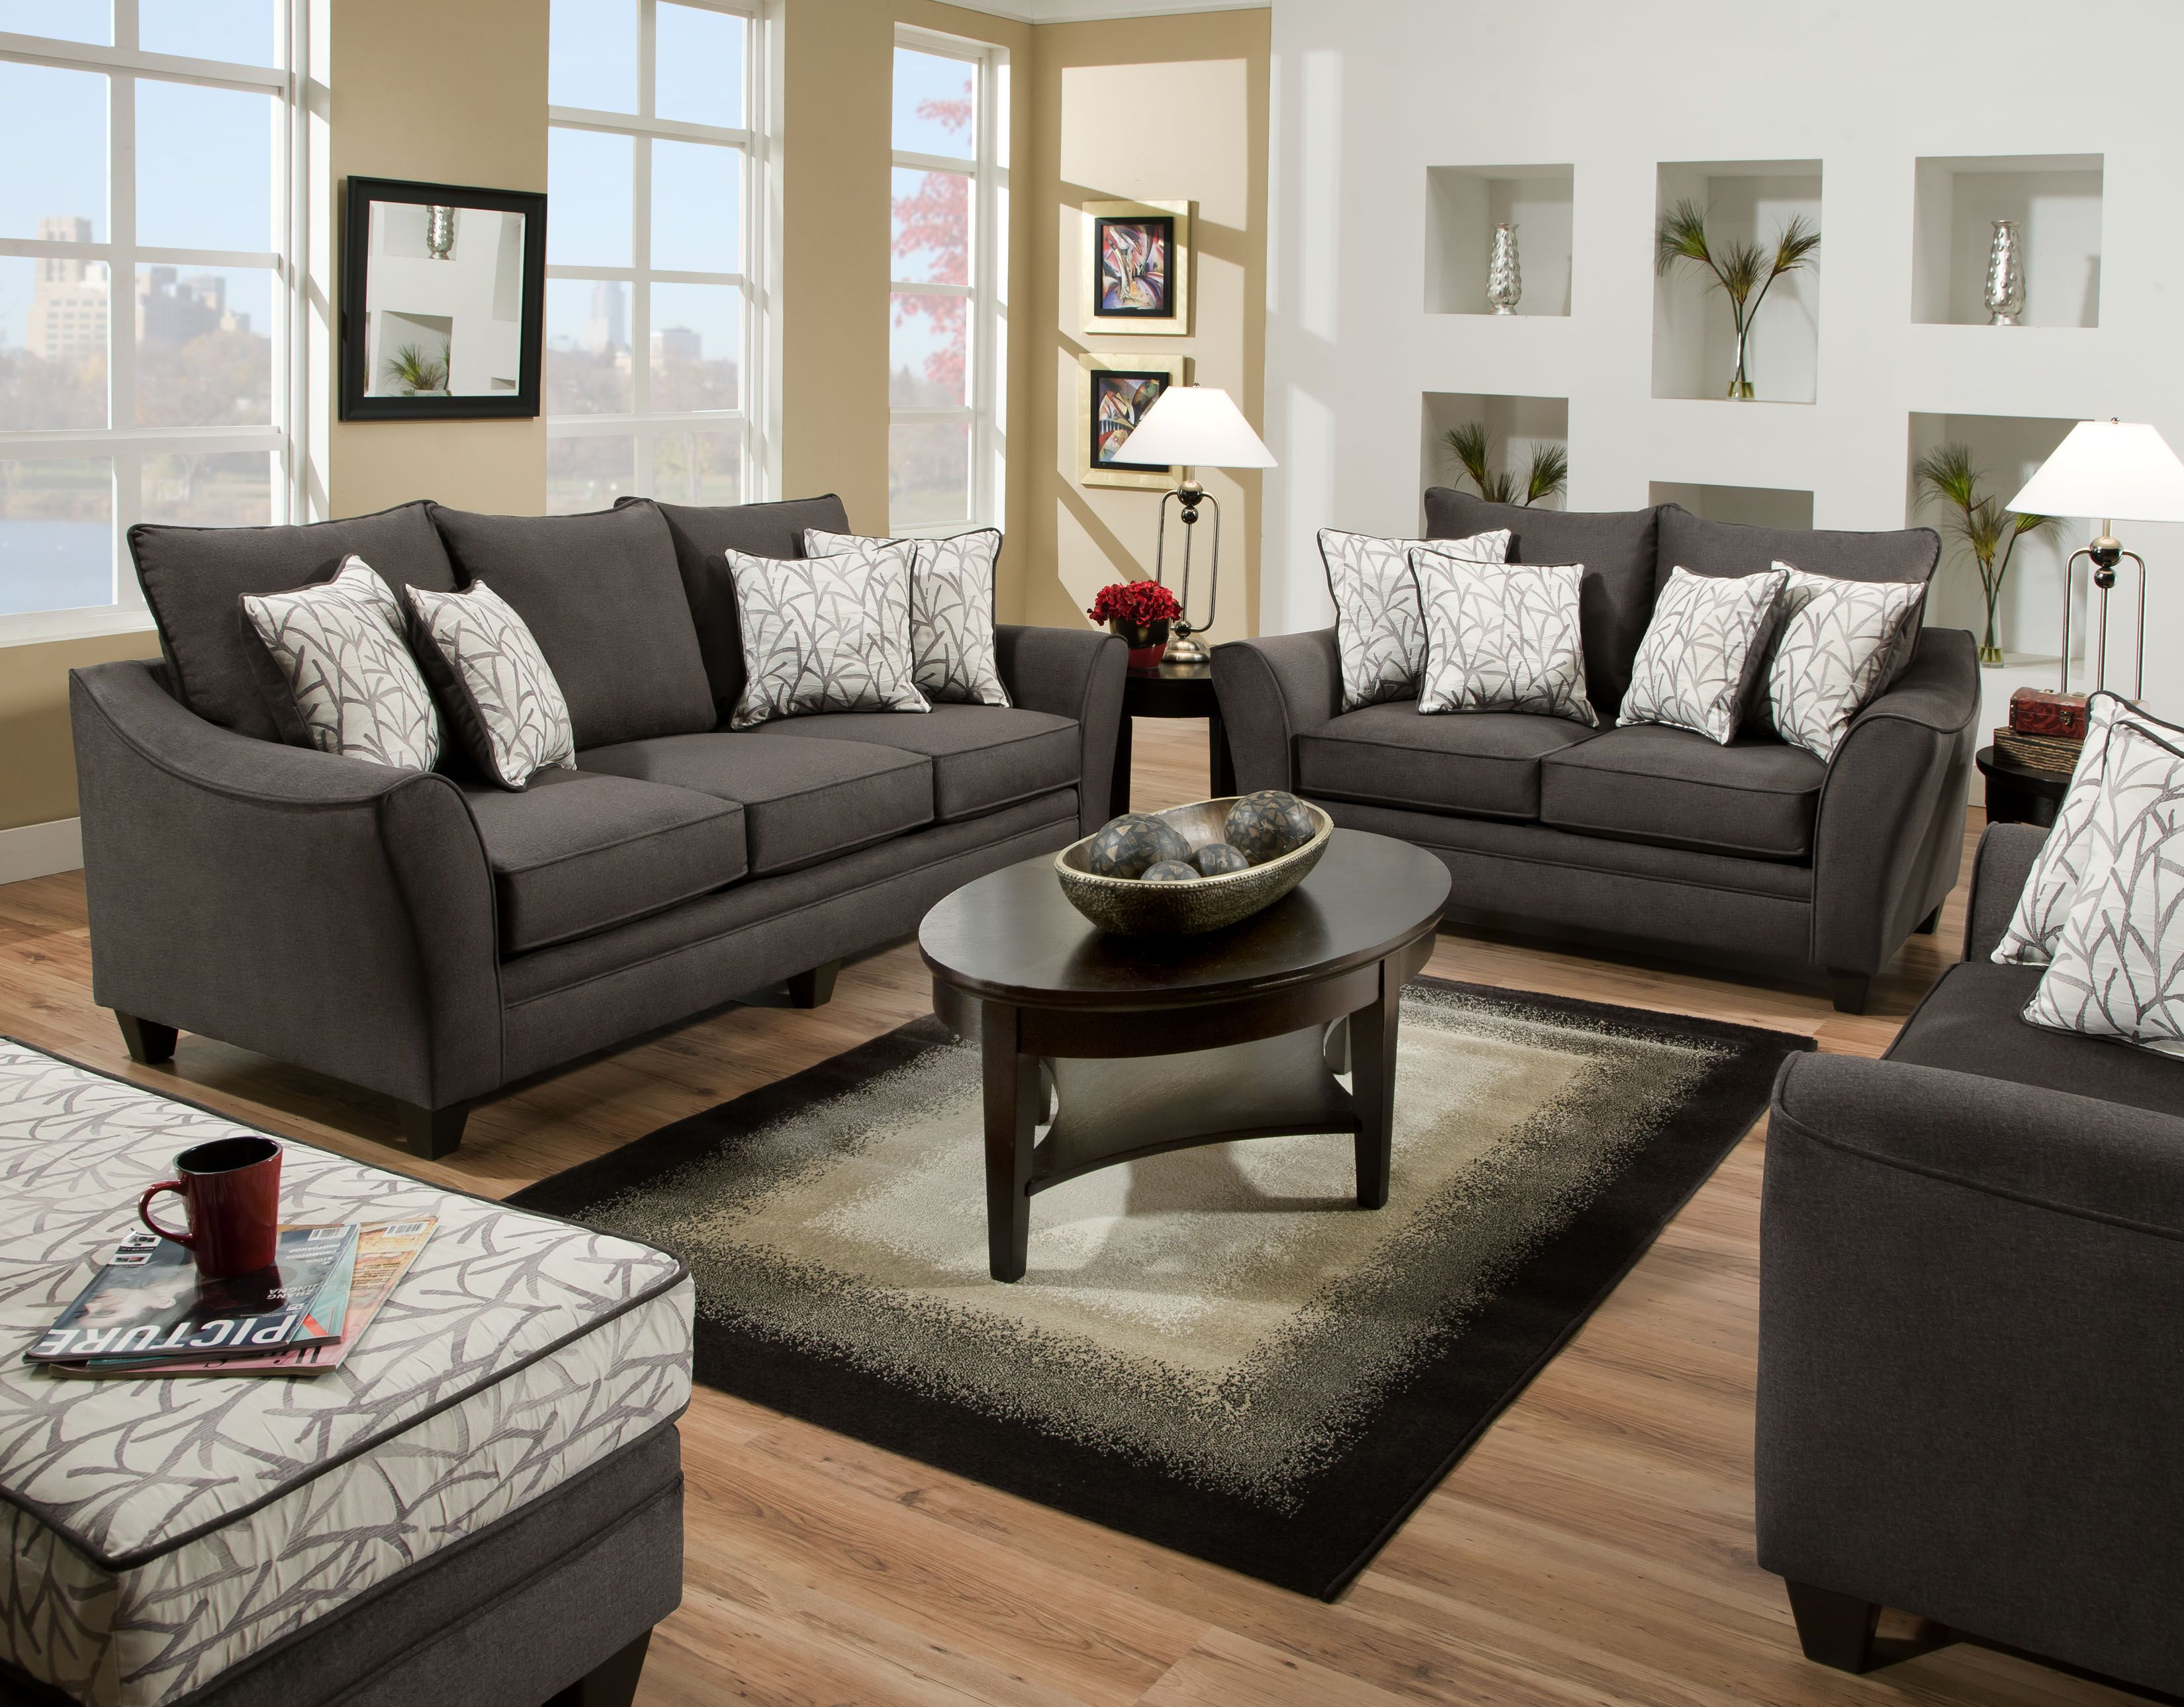 Bigu0027s Furniture Las Vegas Is Dedicated To Bringing You A Wide Variety Of  Home Furnishings At · Living Room ...